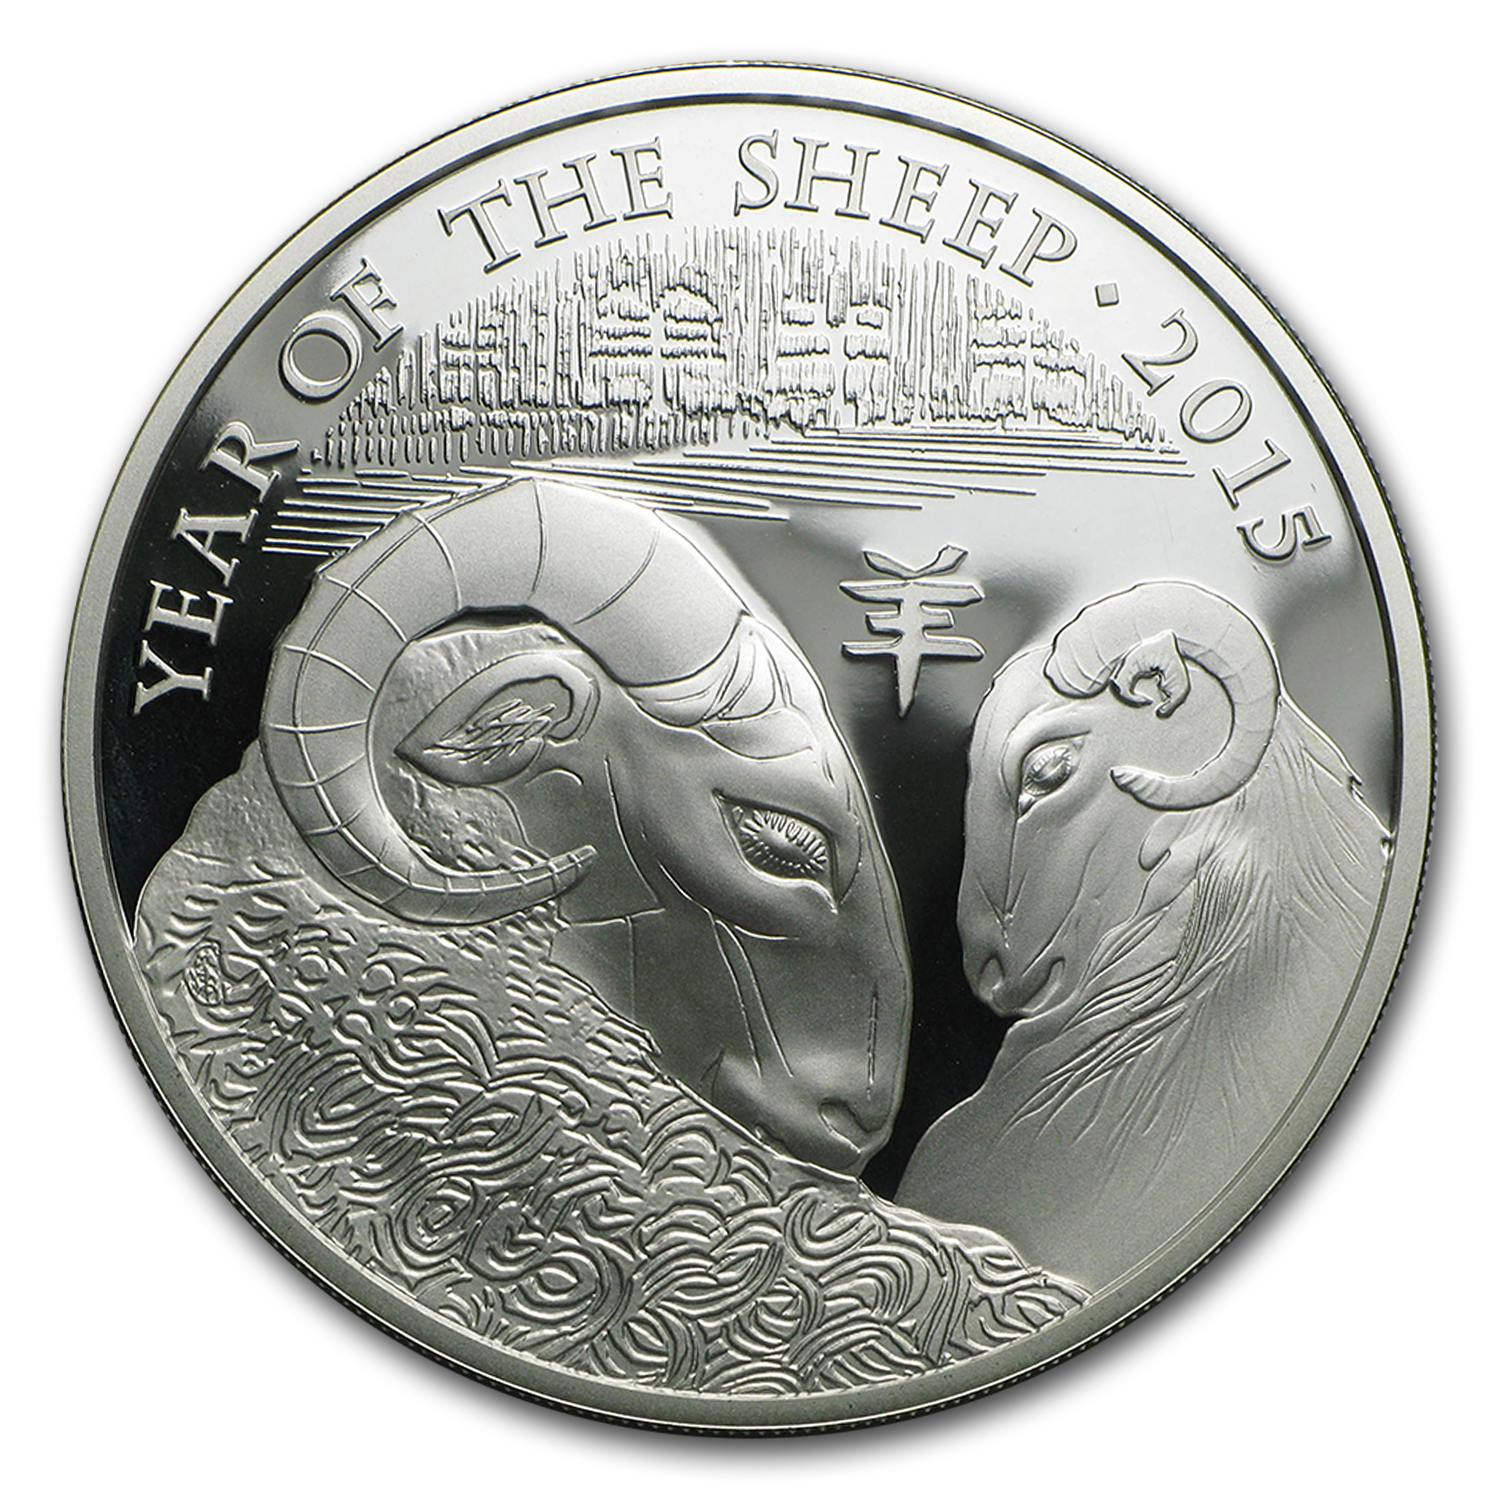 2015 Great Britain 1 oz Silver Year of the Sheep Pf (Abrasions)